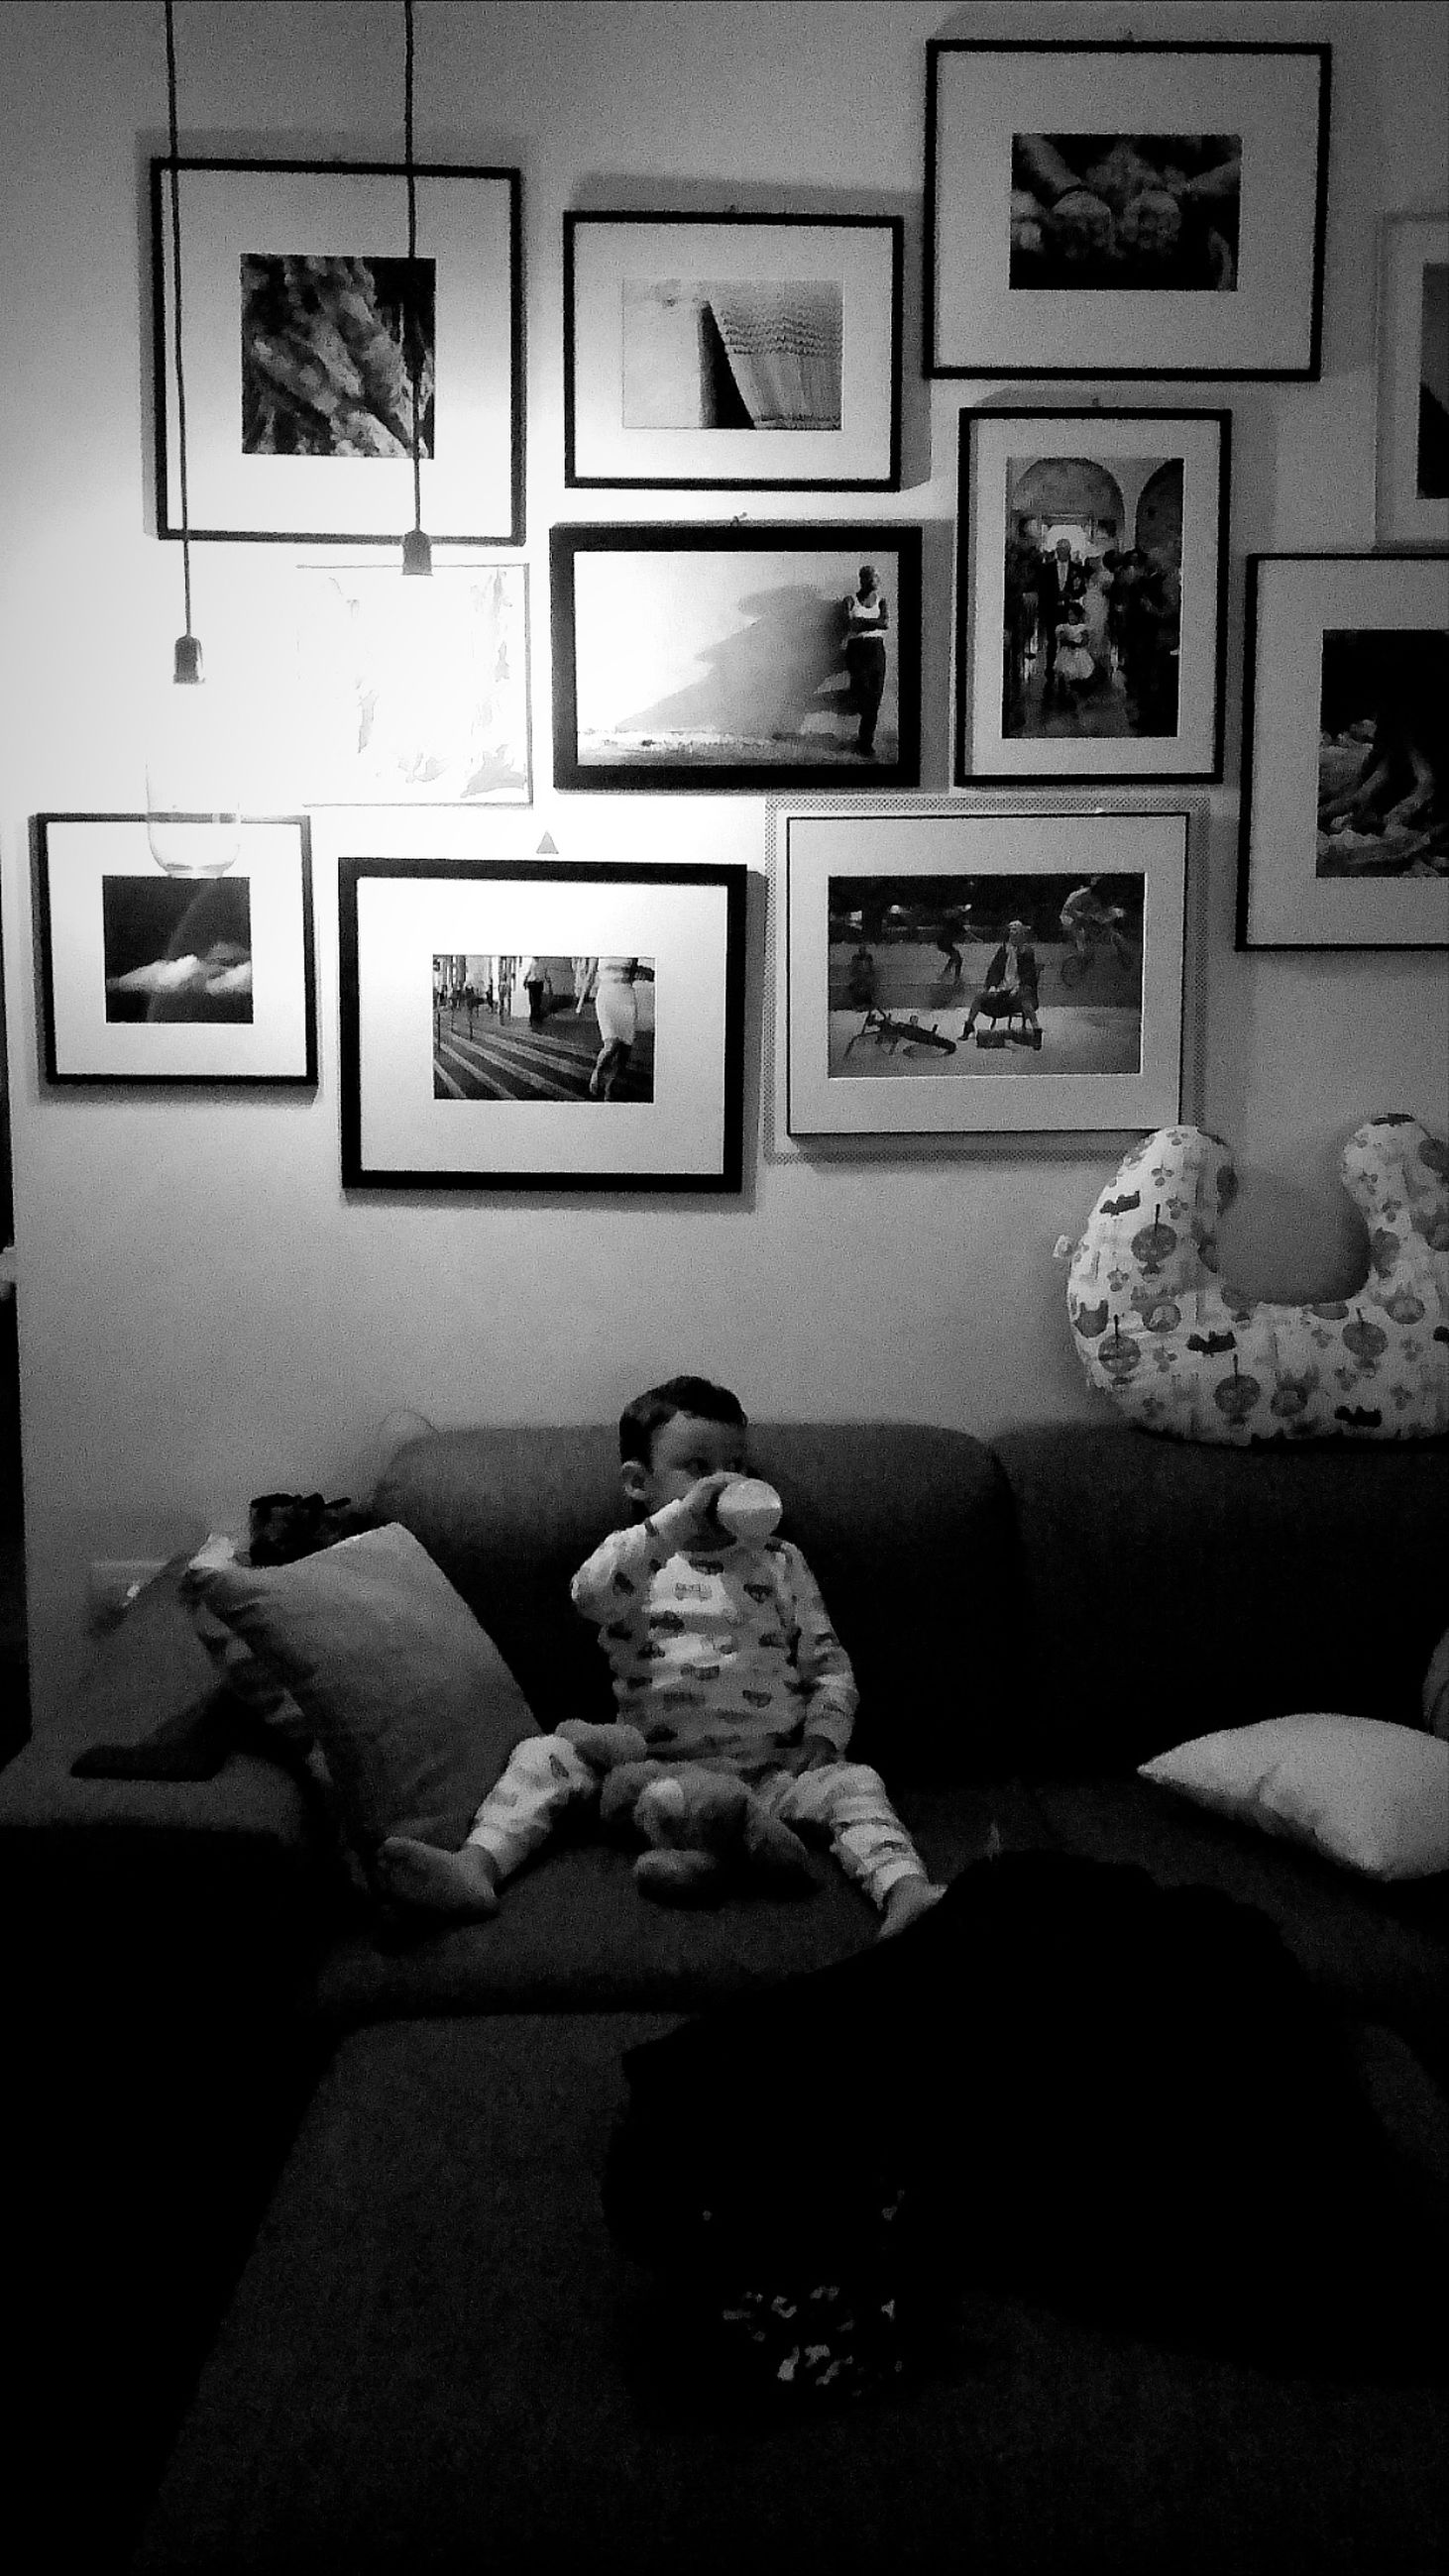 picture frame, domestic room, indoors, frame, furniture, home interior, full length, television set, sitting, living room, people, child, relaxation, lifestyles, sofa, real people, representation, domestic life, childhood, innocence, watching tv